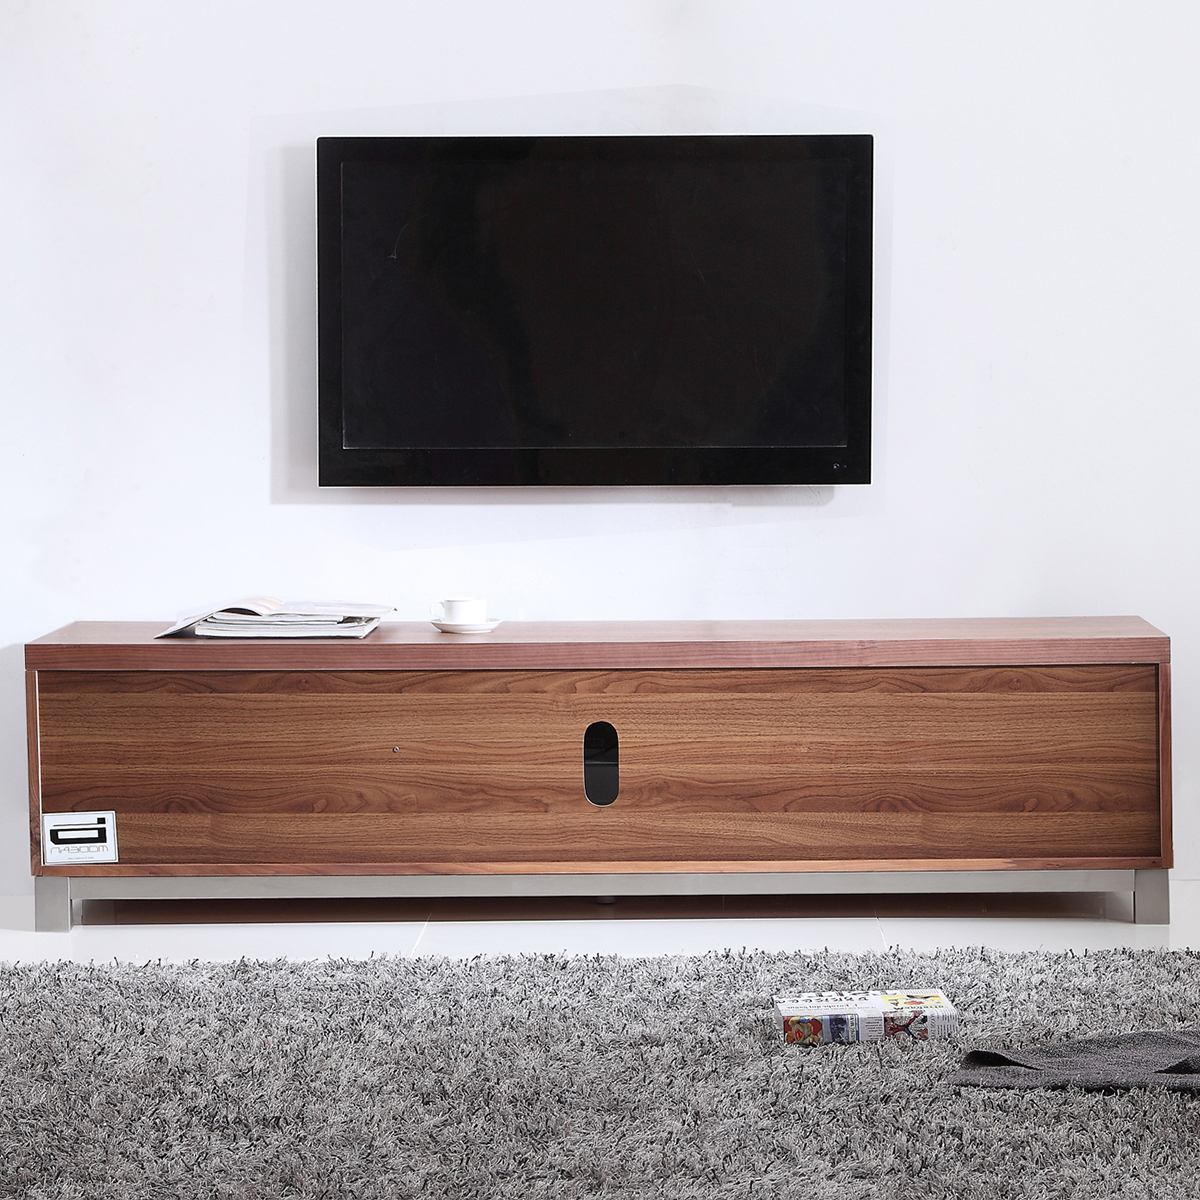 Latest Small Corner Tv Stand Oak Ashley Furniture For 60 Inch Flat Screen For Small Oak Corner Tv Stands (View 6 of 20)